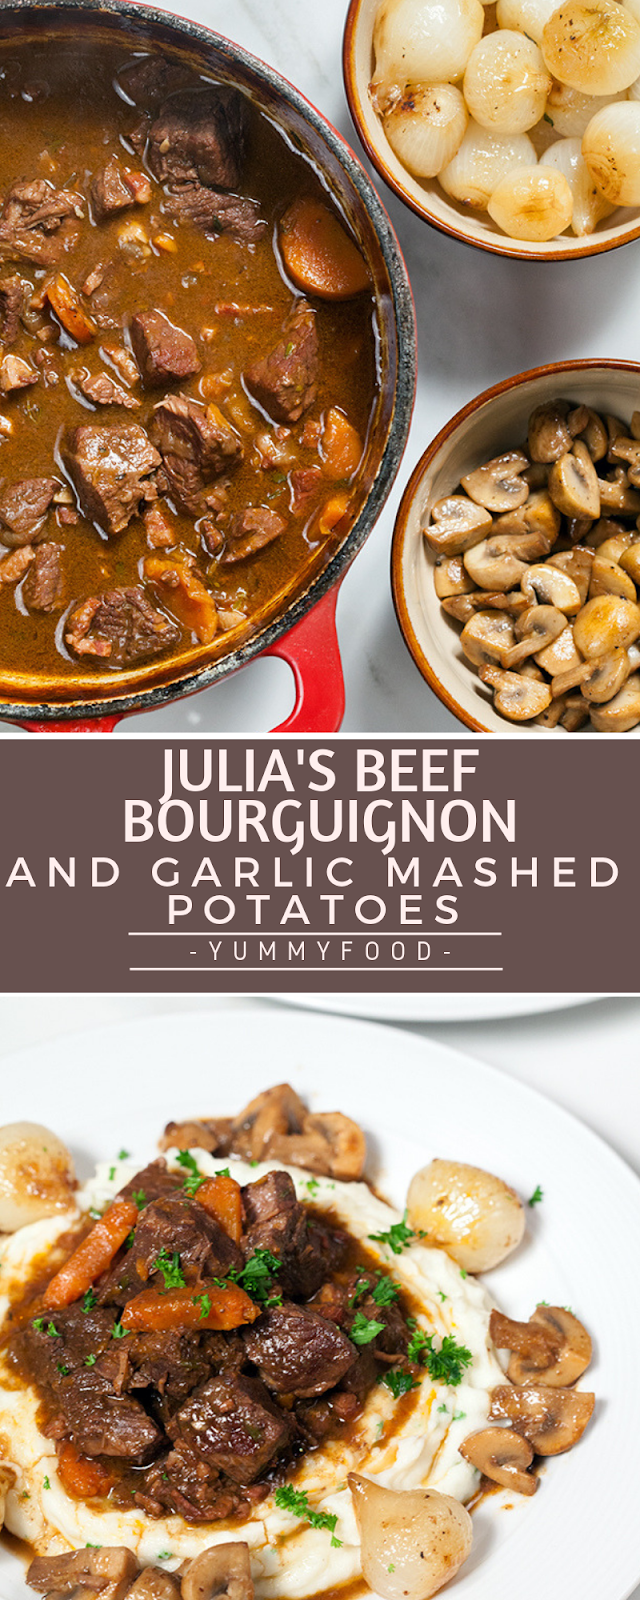 Julia's Meat Bourguignon and Garlic Mashed Potatoes